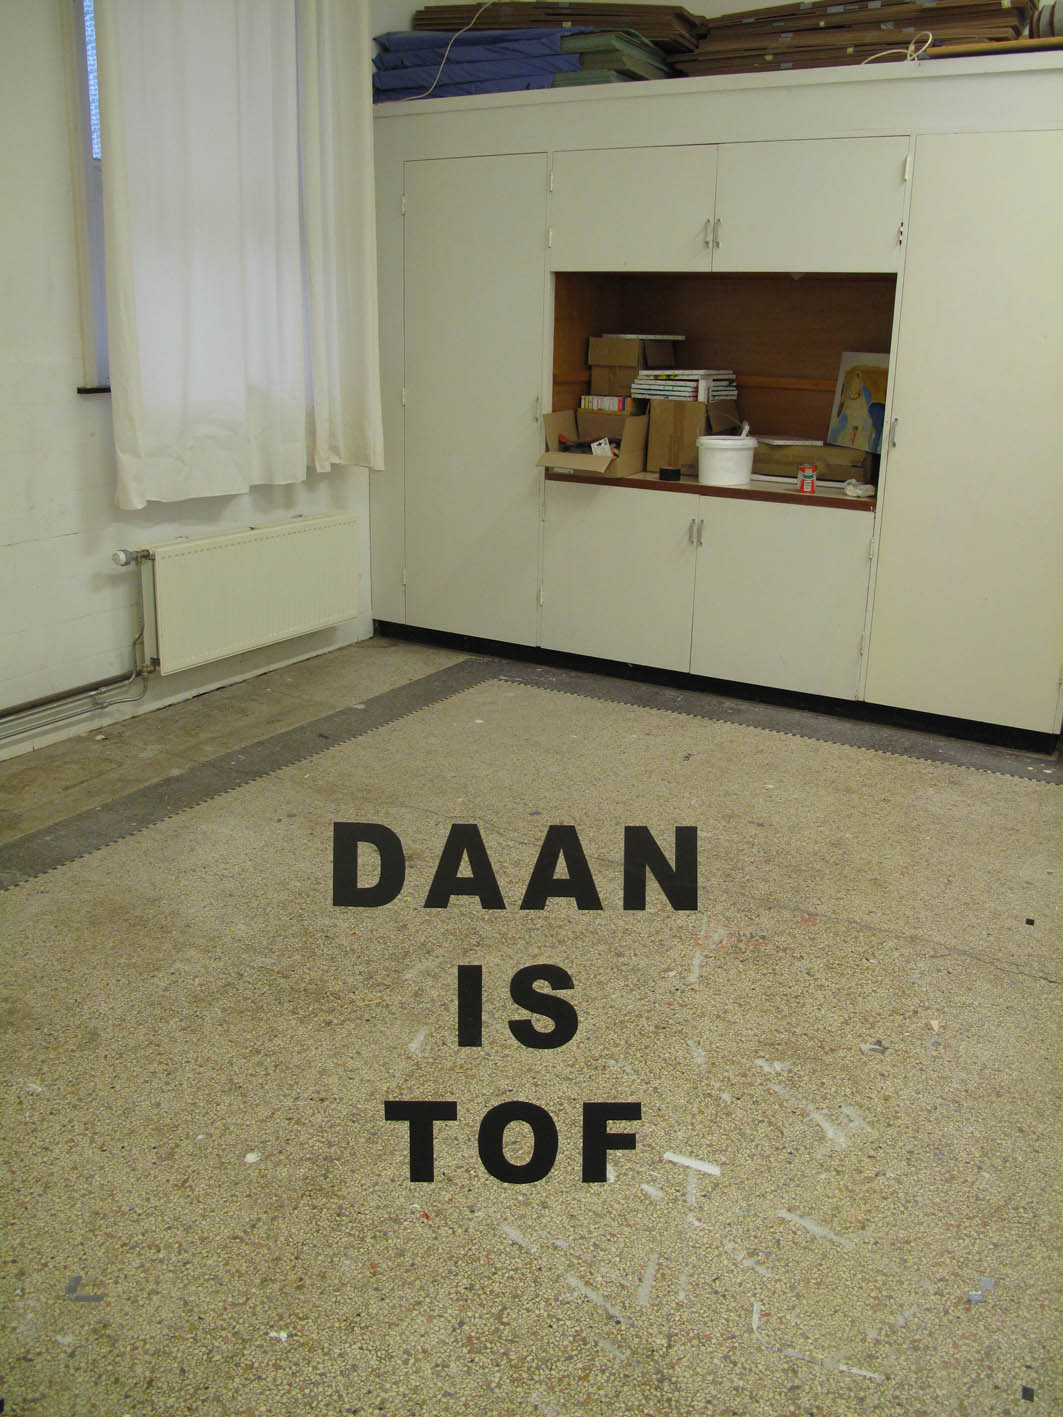 DAAN IS TOF – Correction On Jan Dibbets Perspective Correction